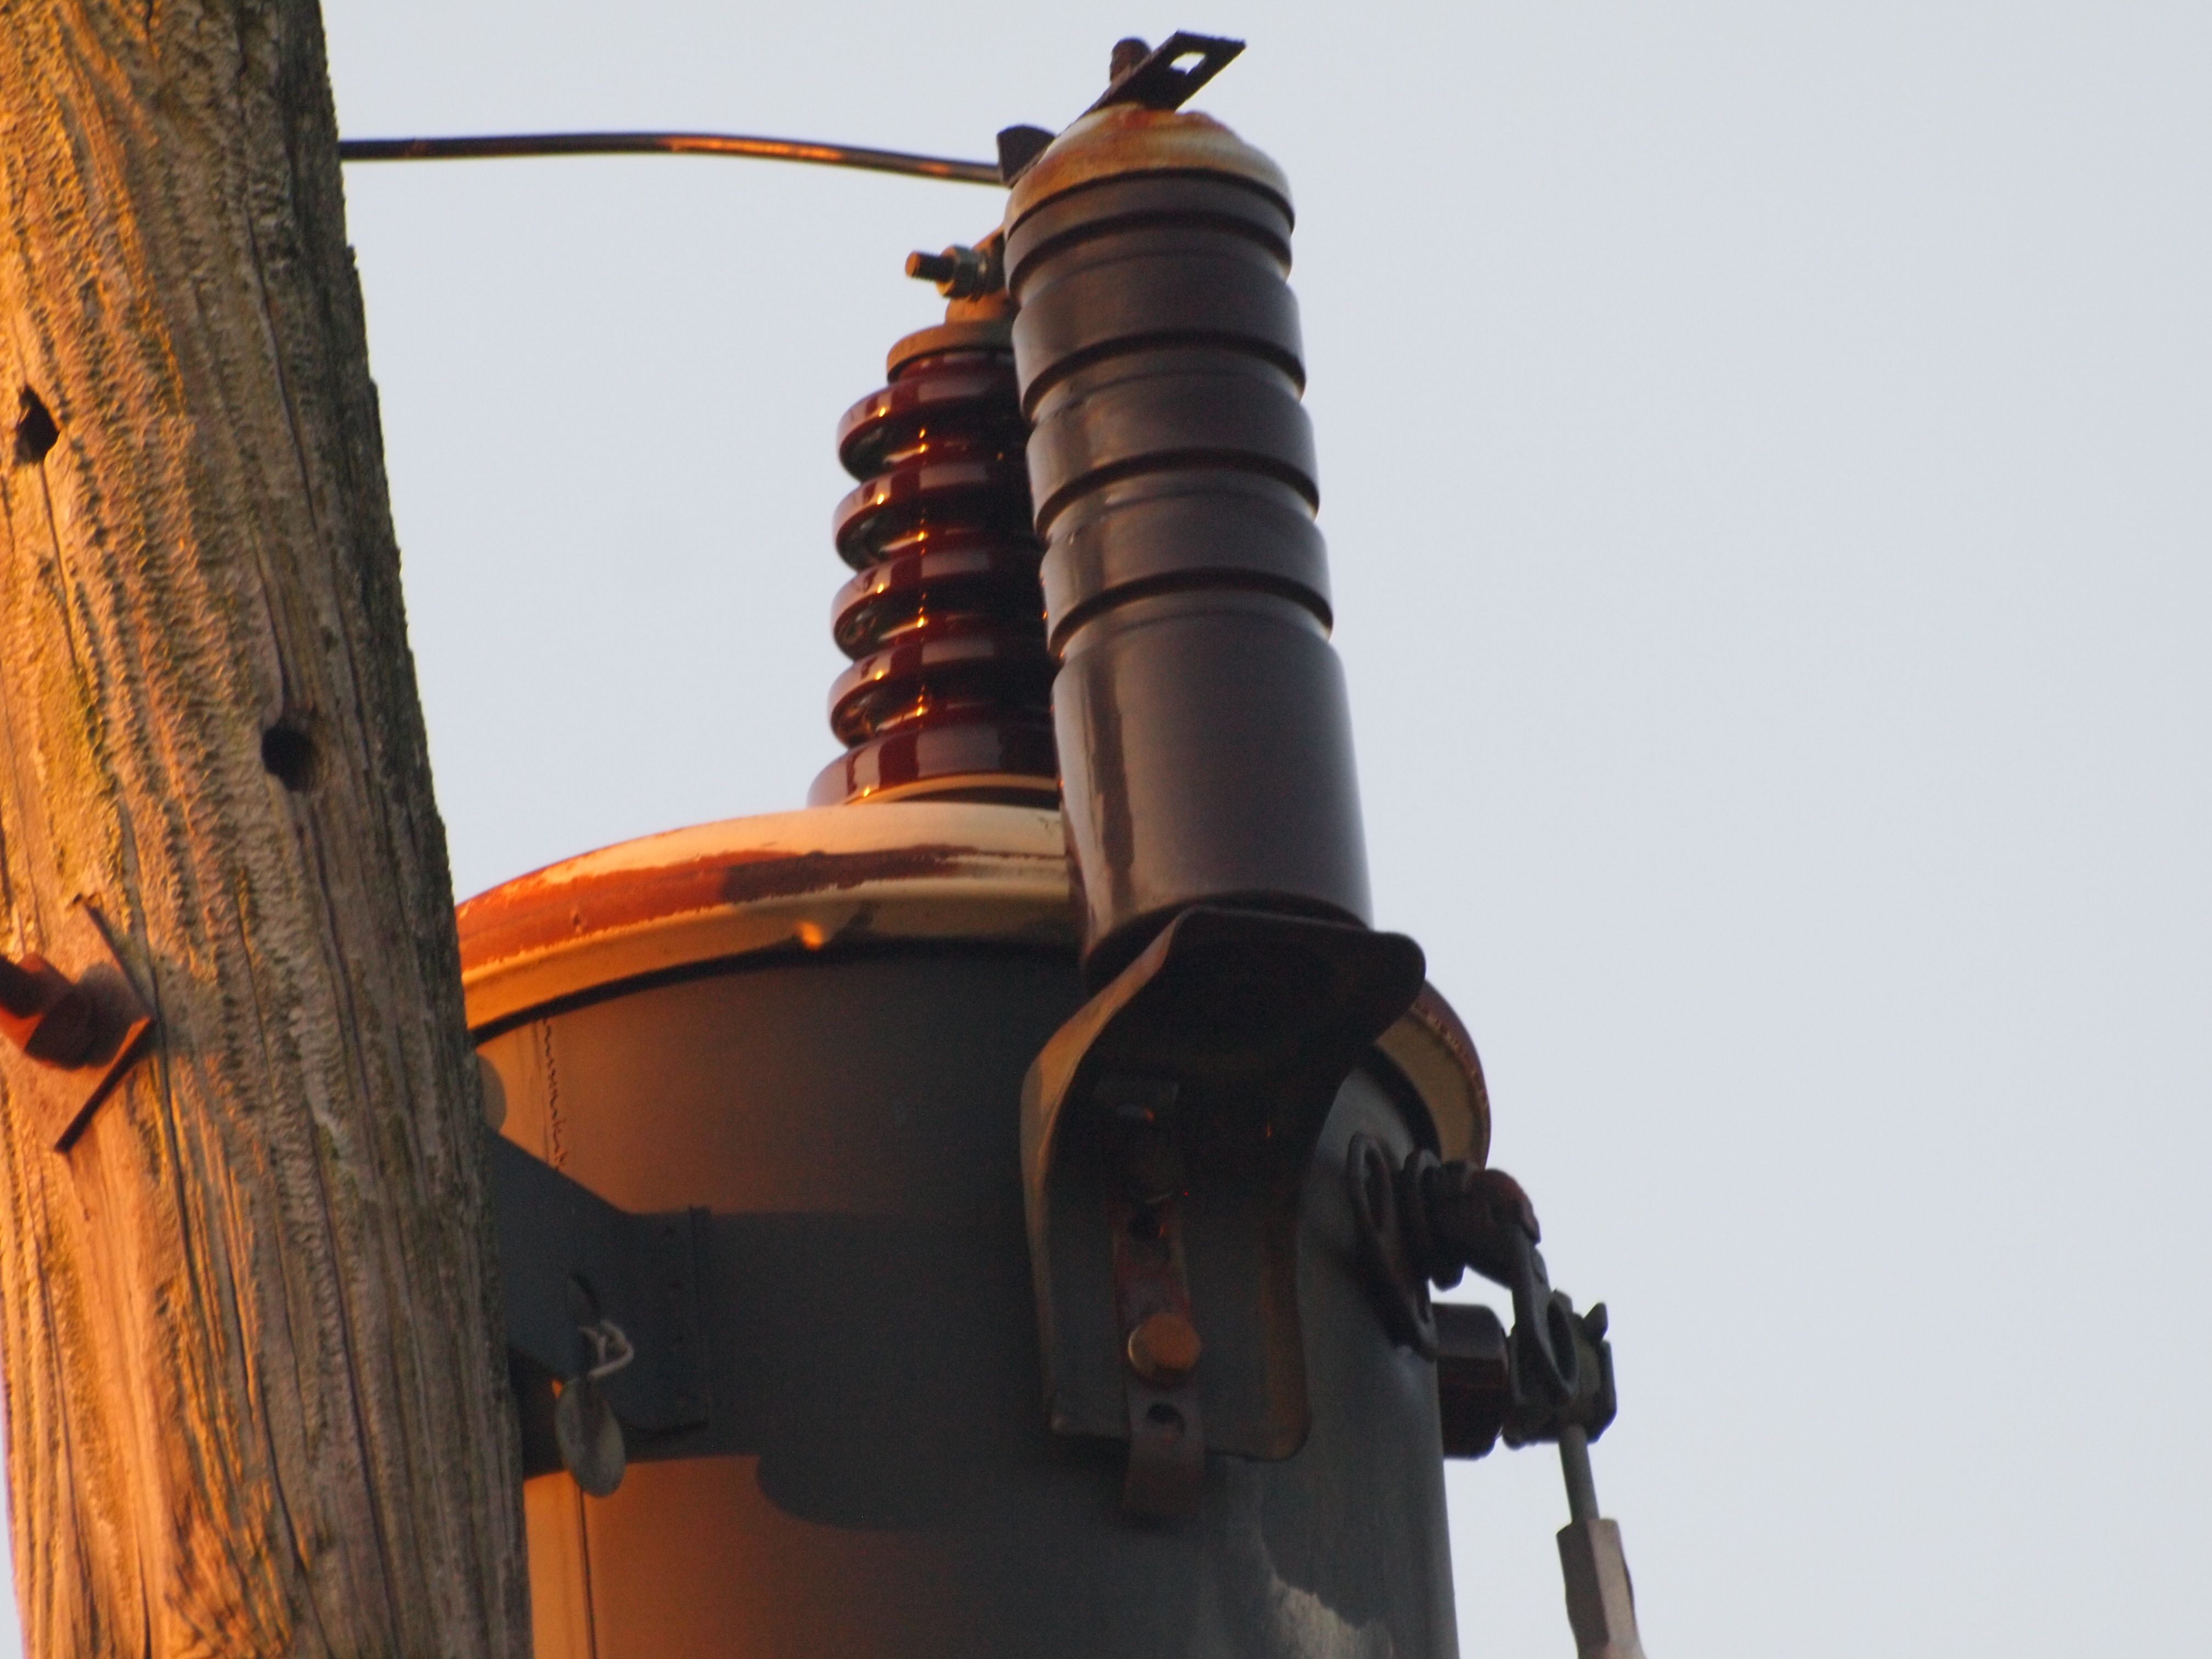 medium resolution of our electric transformer the line men say this type is so old they rarely come across them any more it will fry a squirrel knocking the electric here